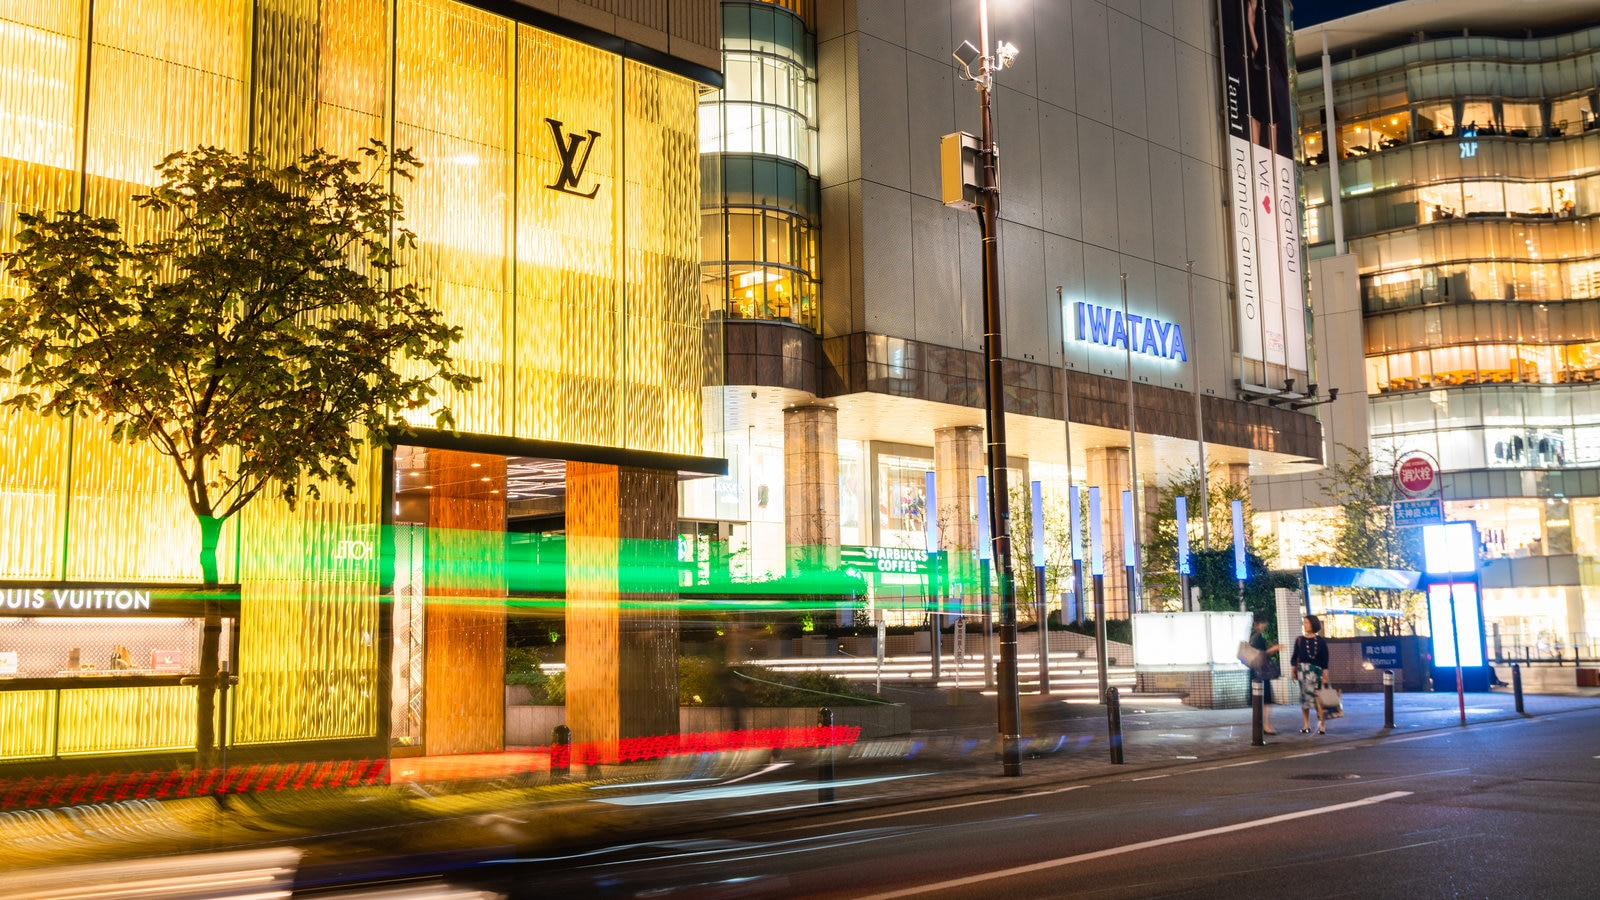 Tenjin featuring street scenes, a city and night scenes